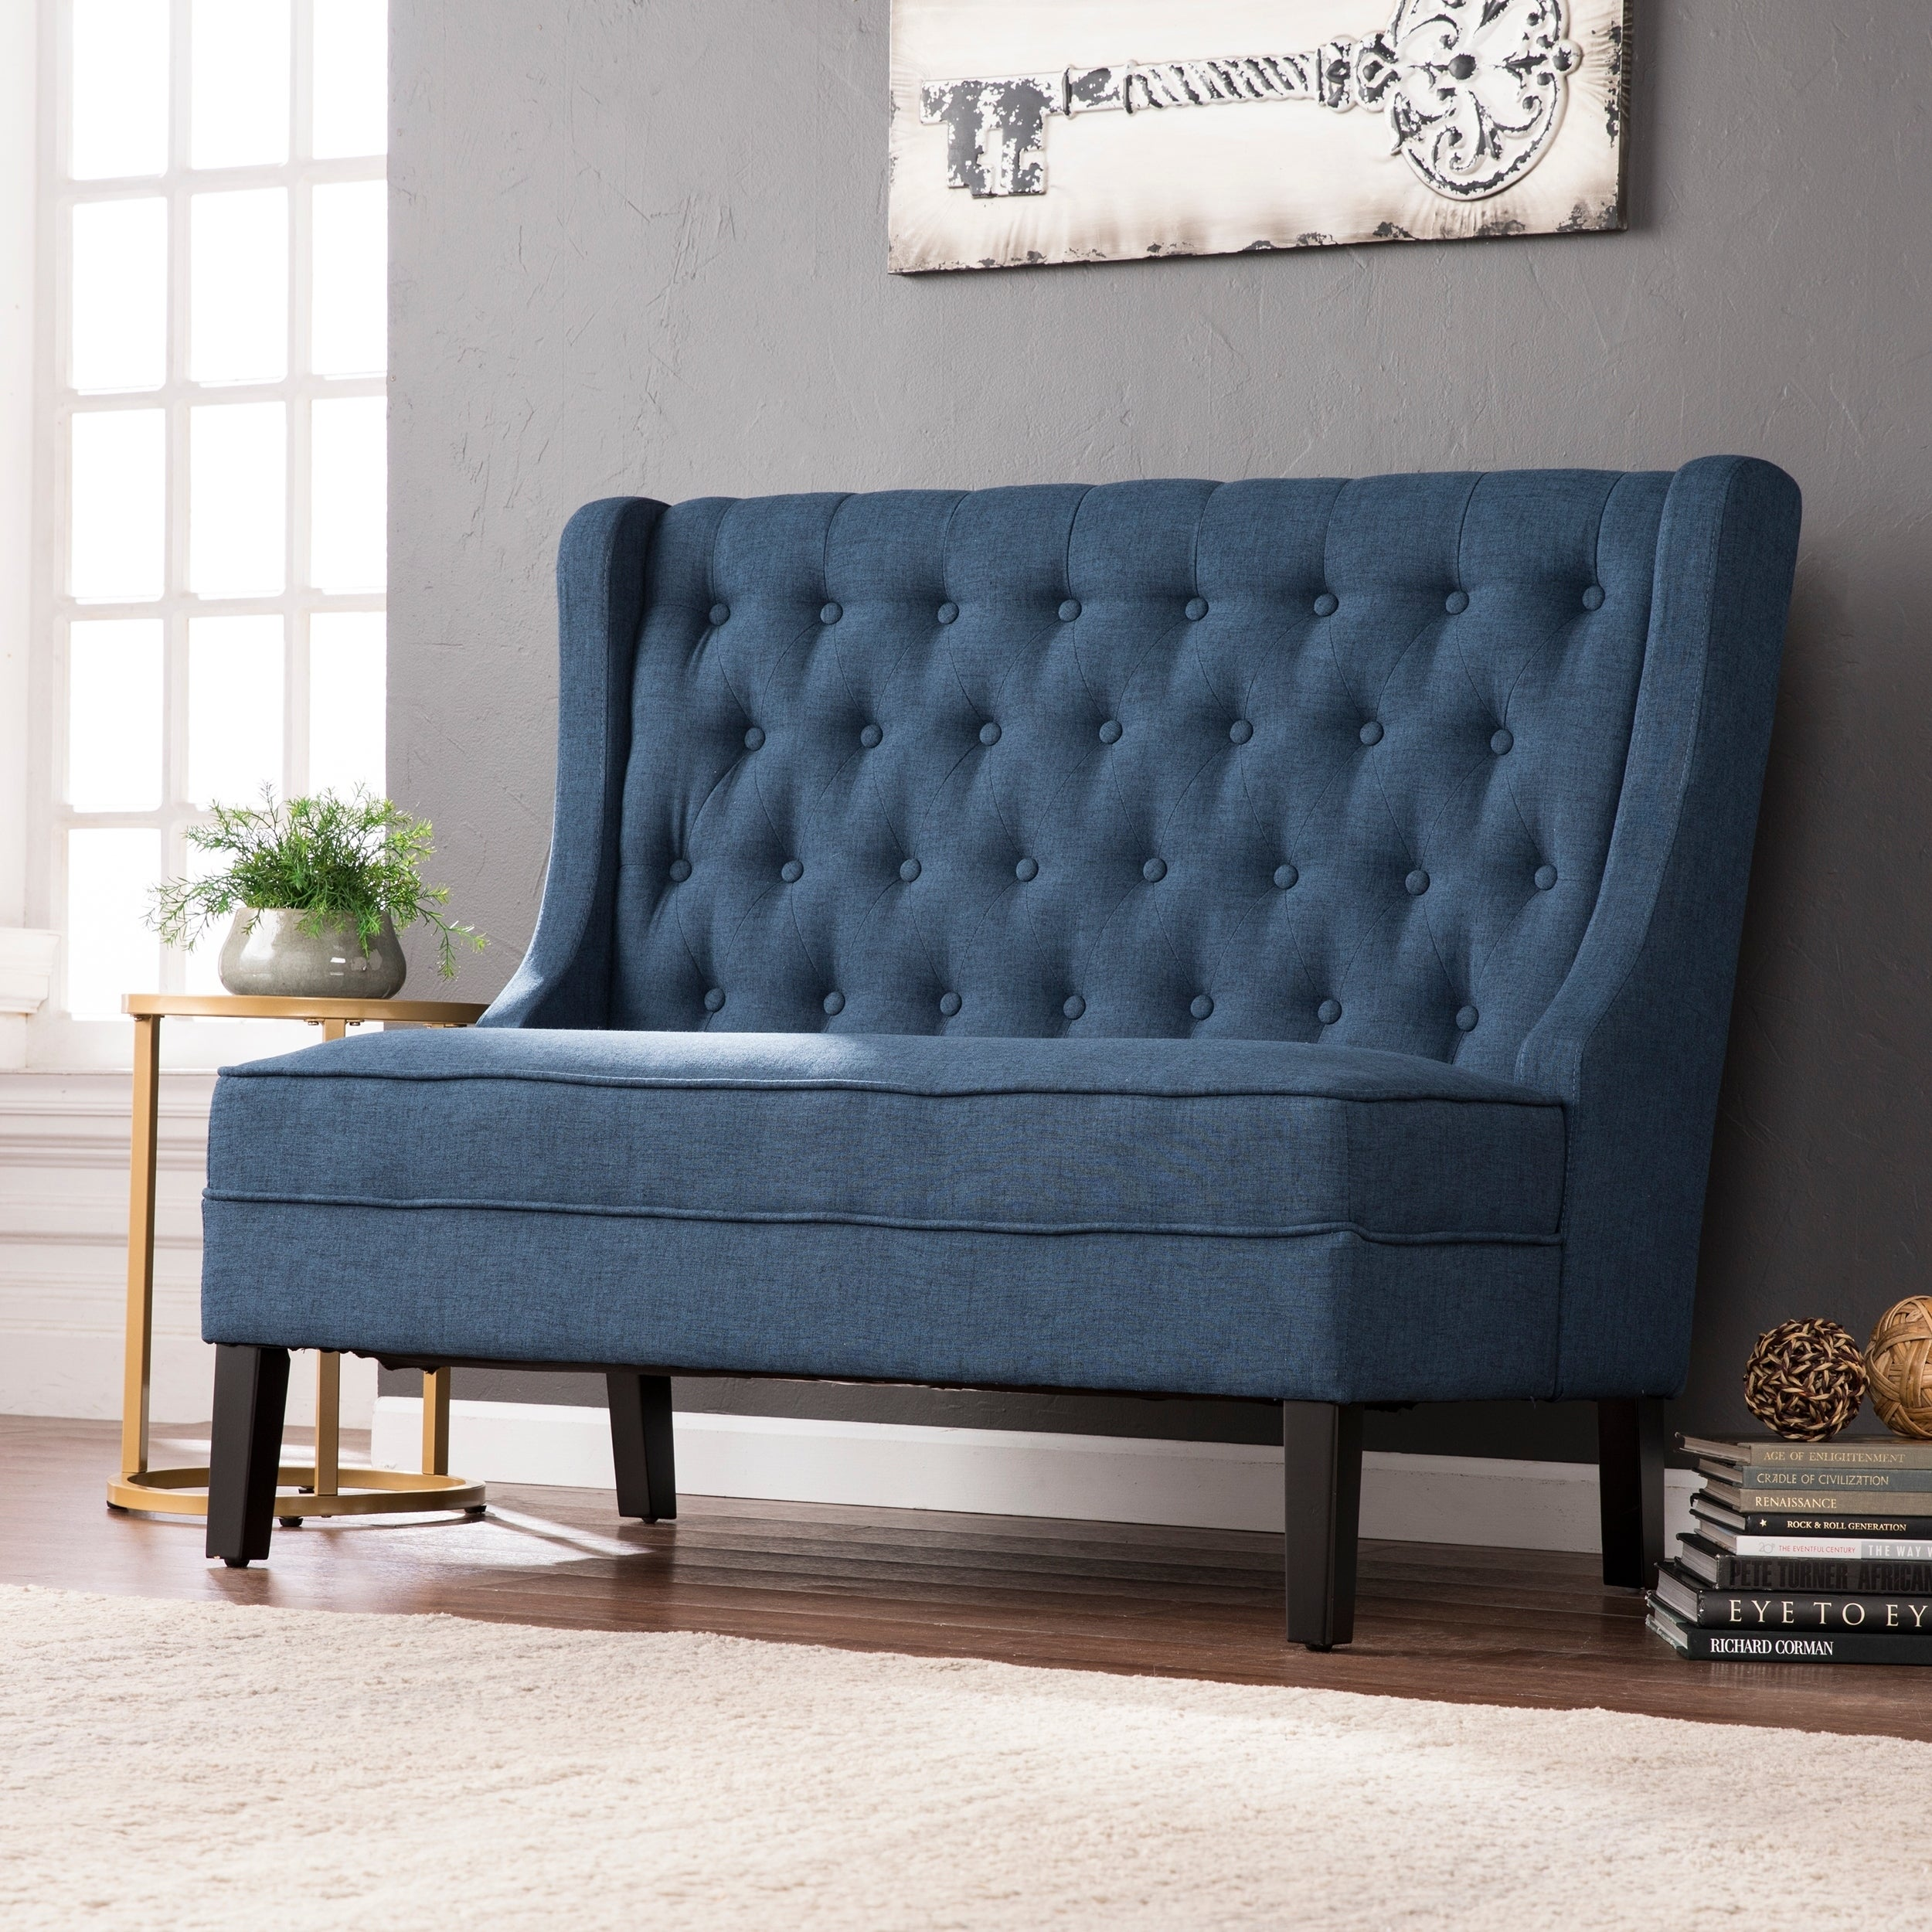 Harper Blvd Lincoln Charcoal High Back Tufted Settee Bench Free